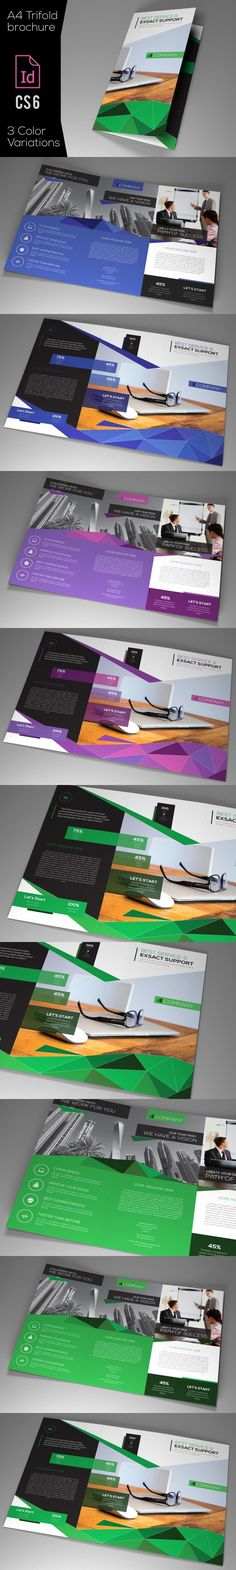 Indesign brochure - Cristal